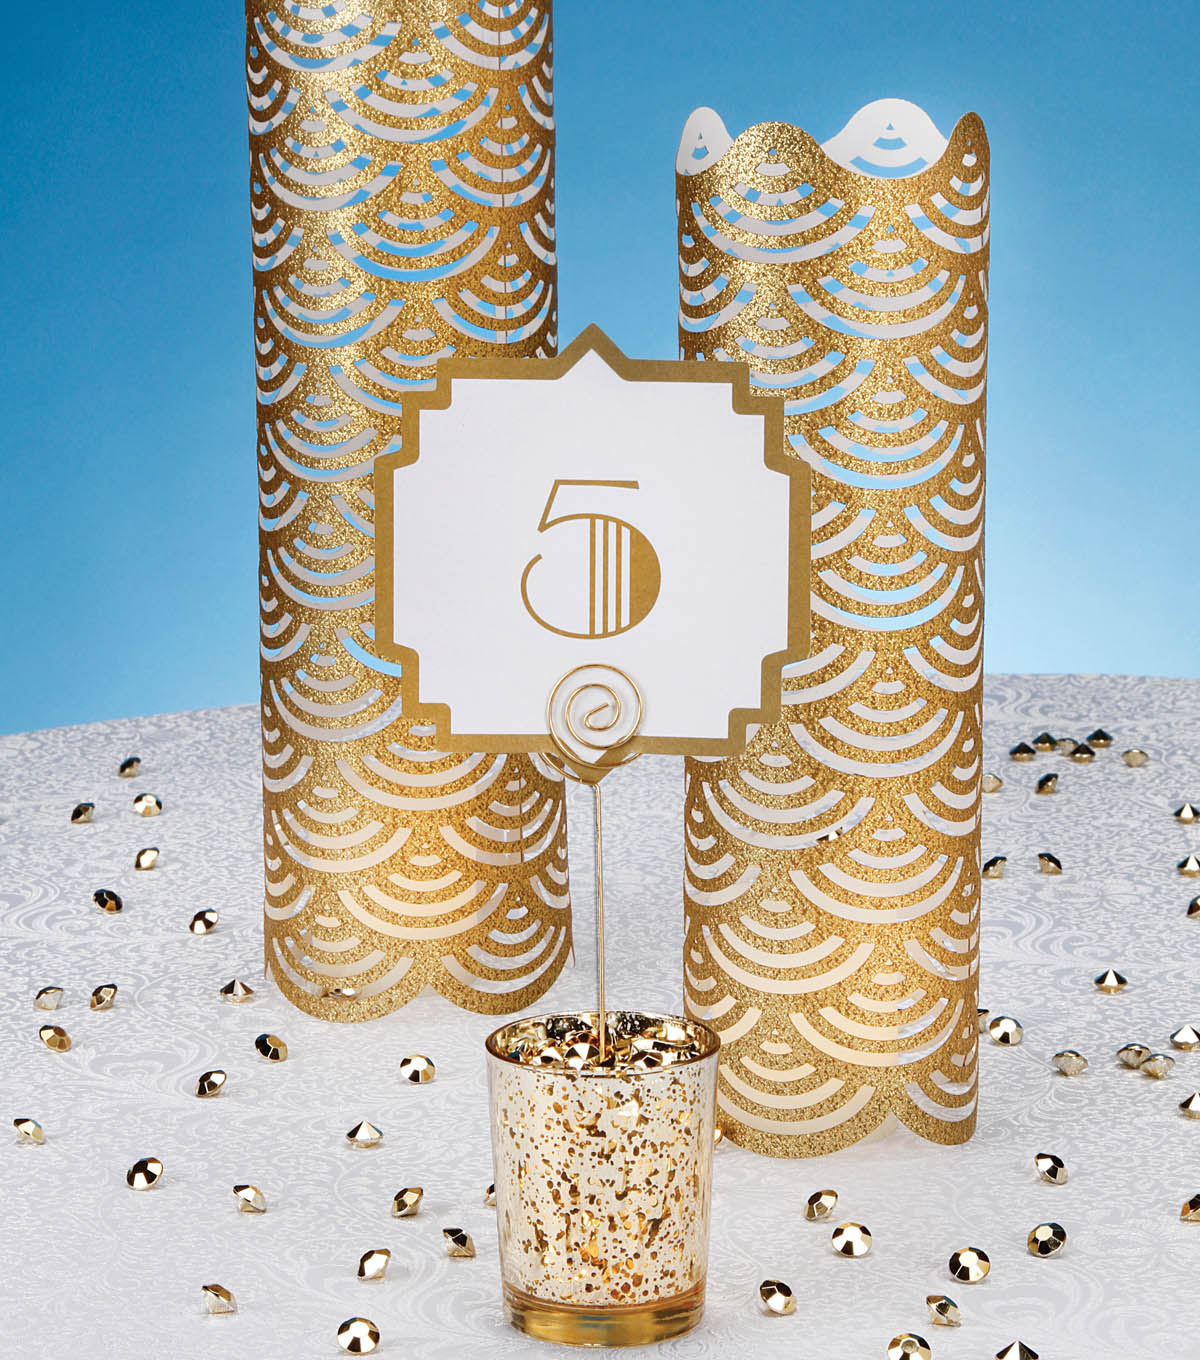 Art Deco Table Number and Decorative Luminary